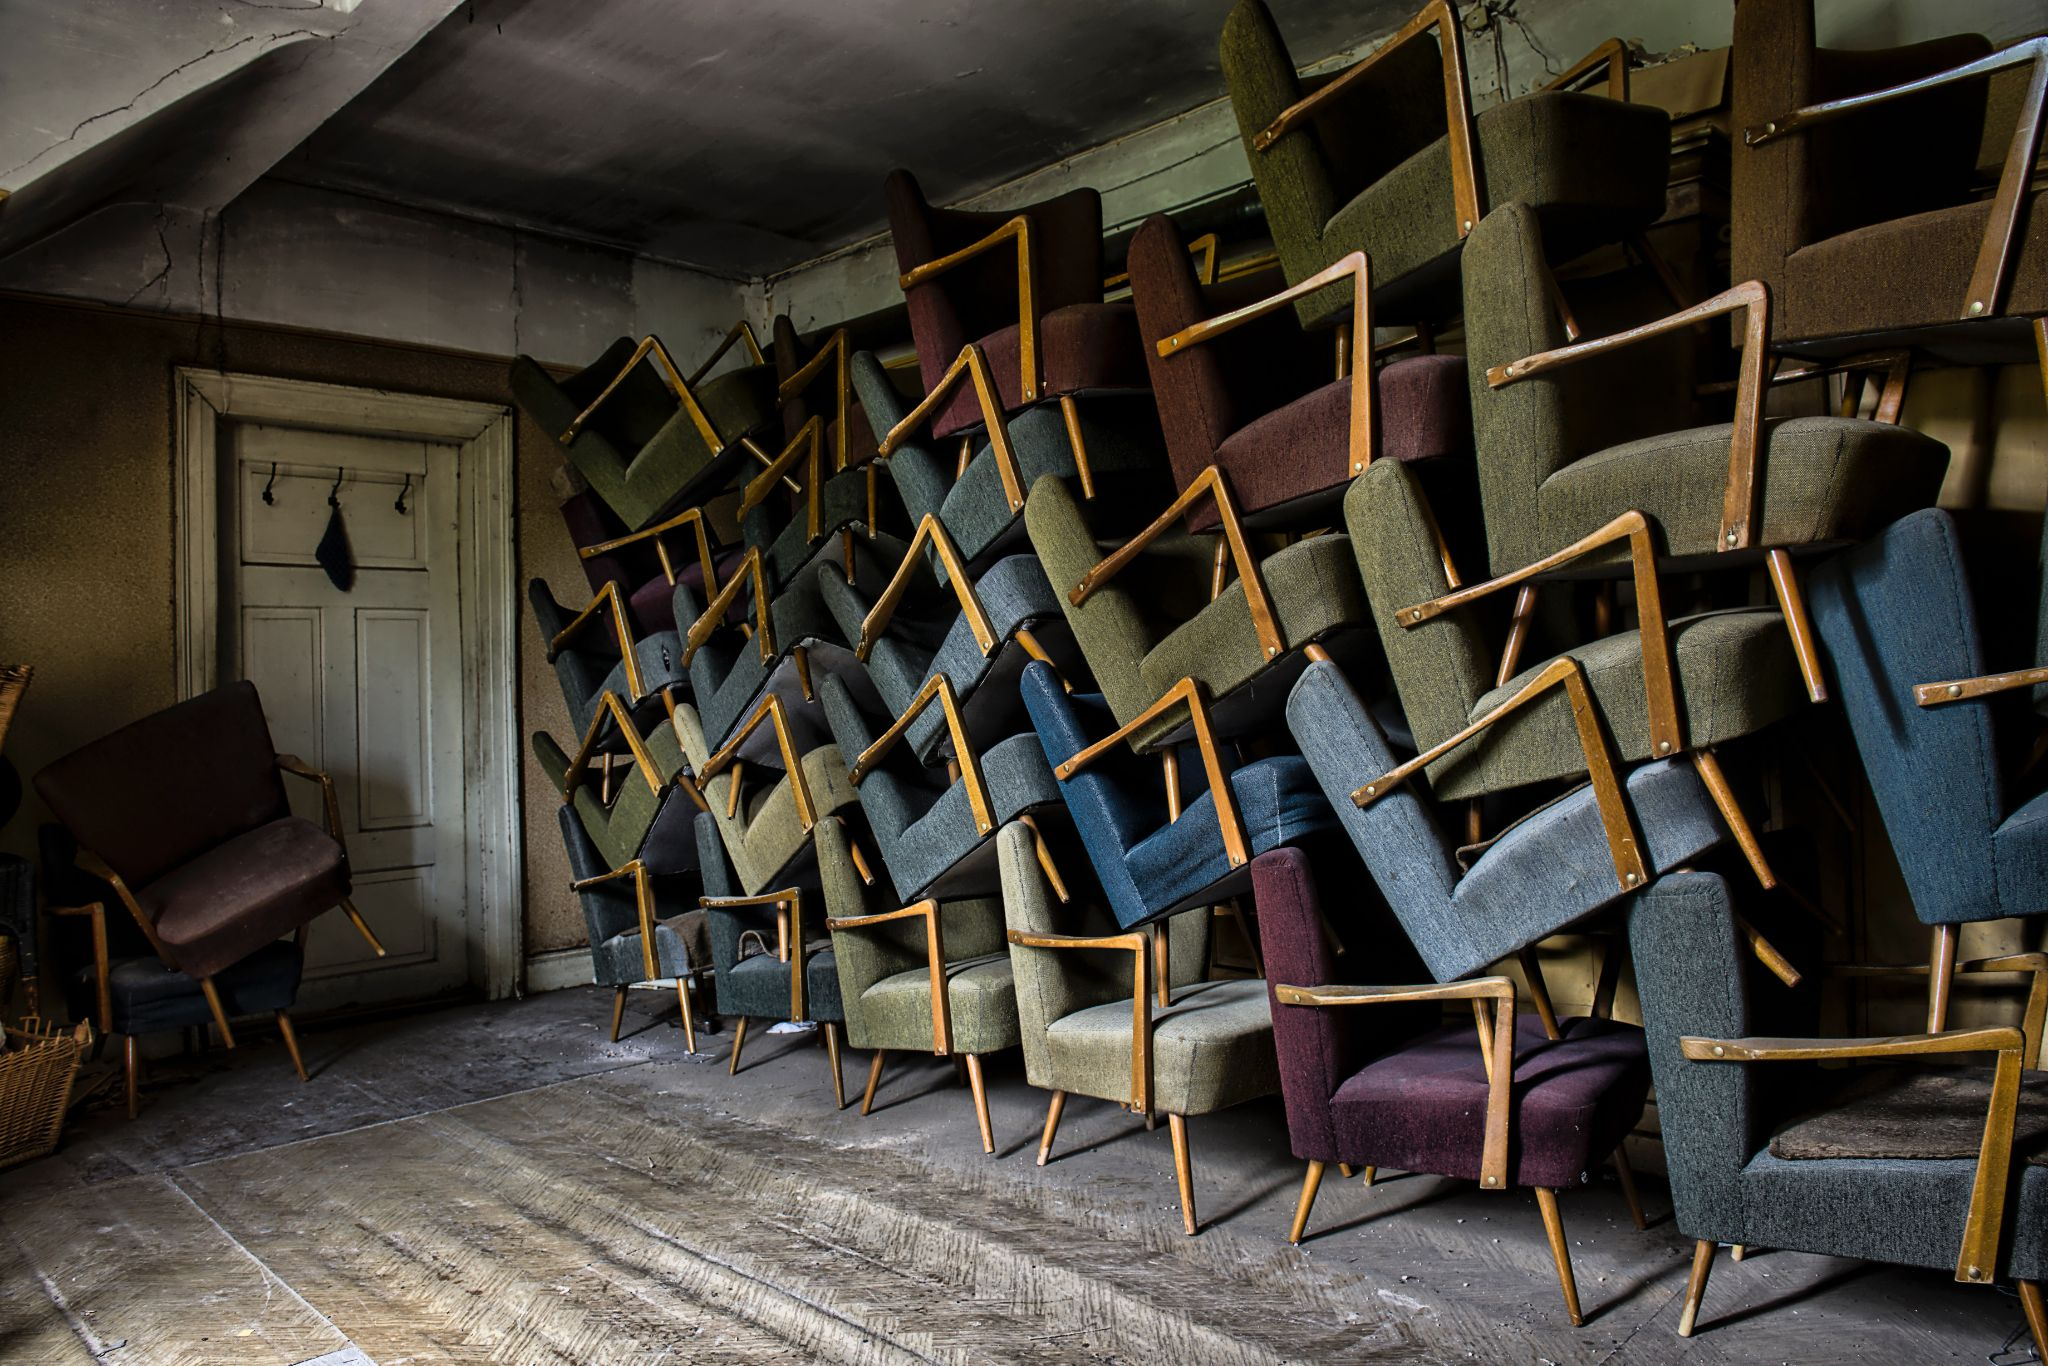 Room with many stacked arm chairs on one side